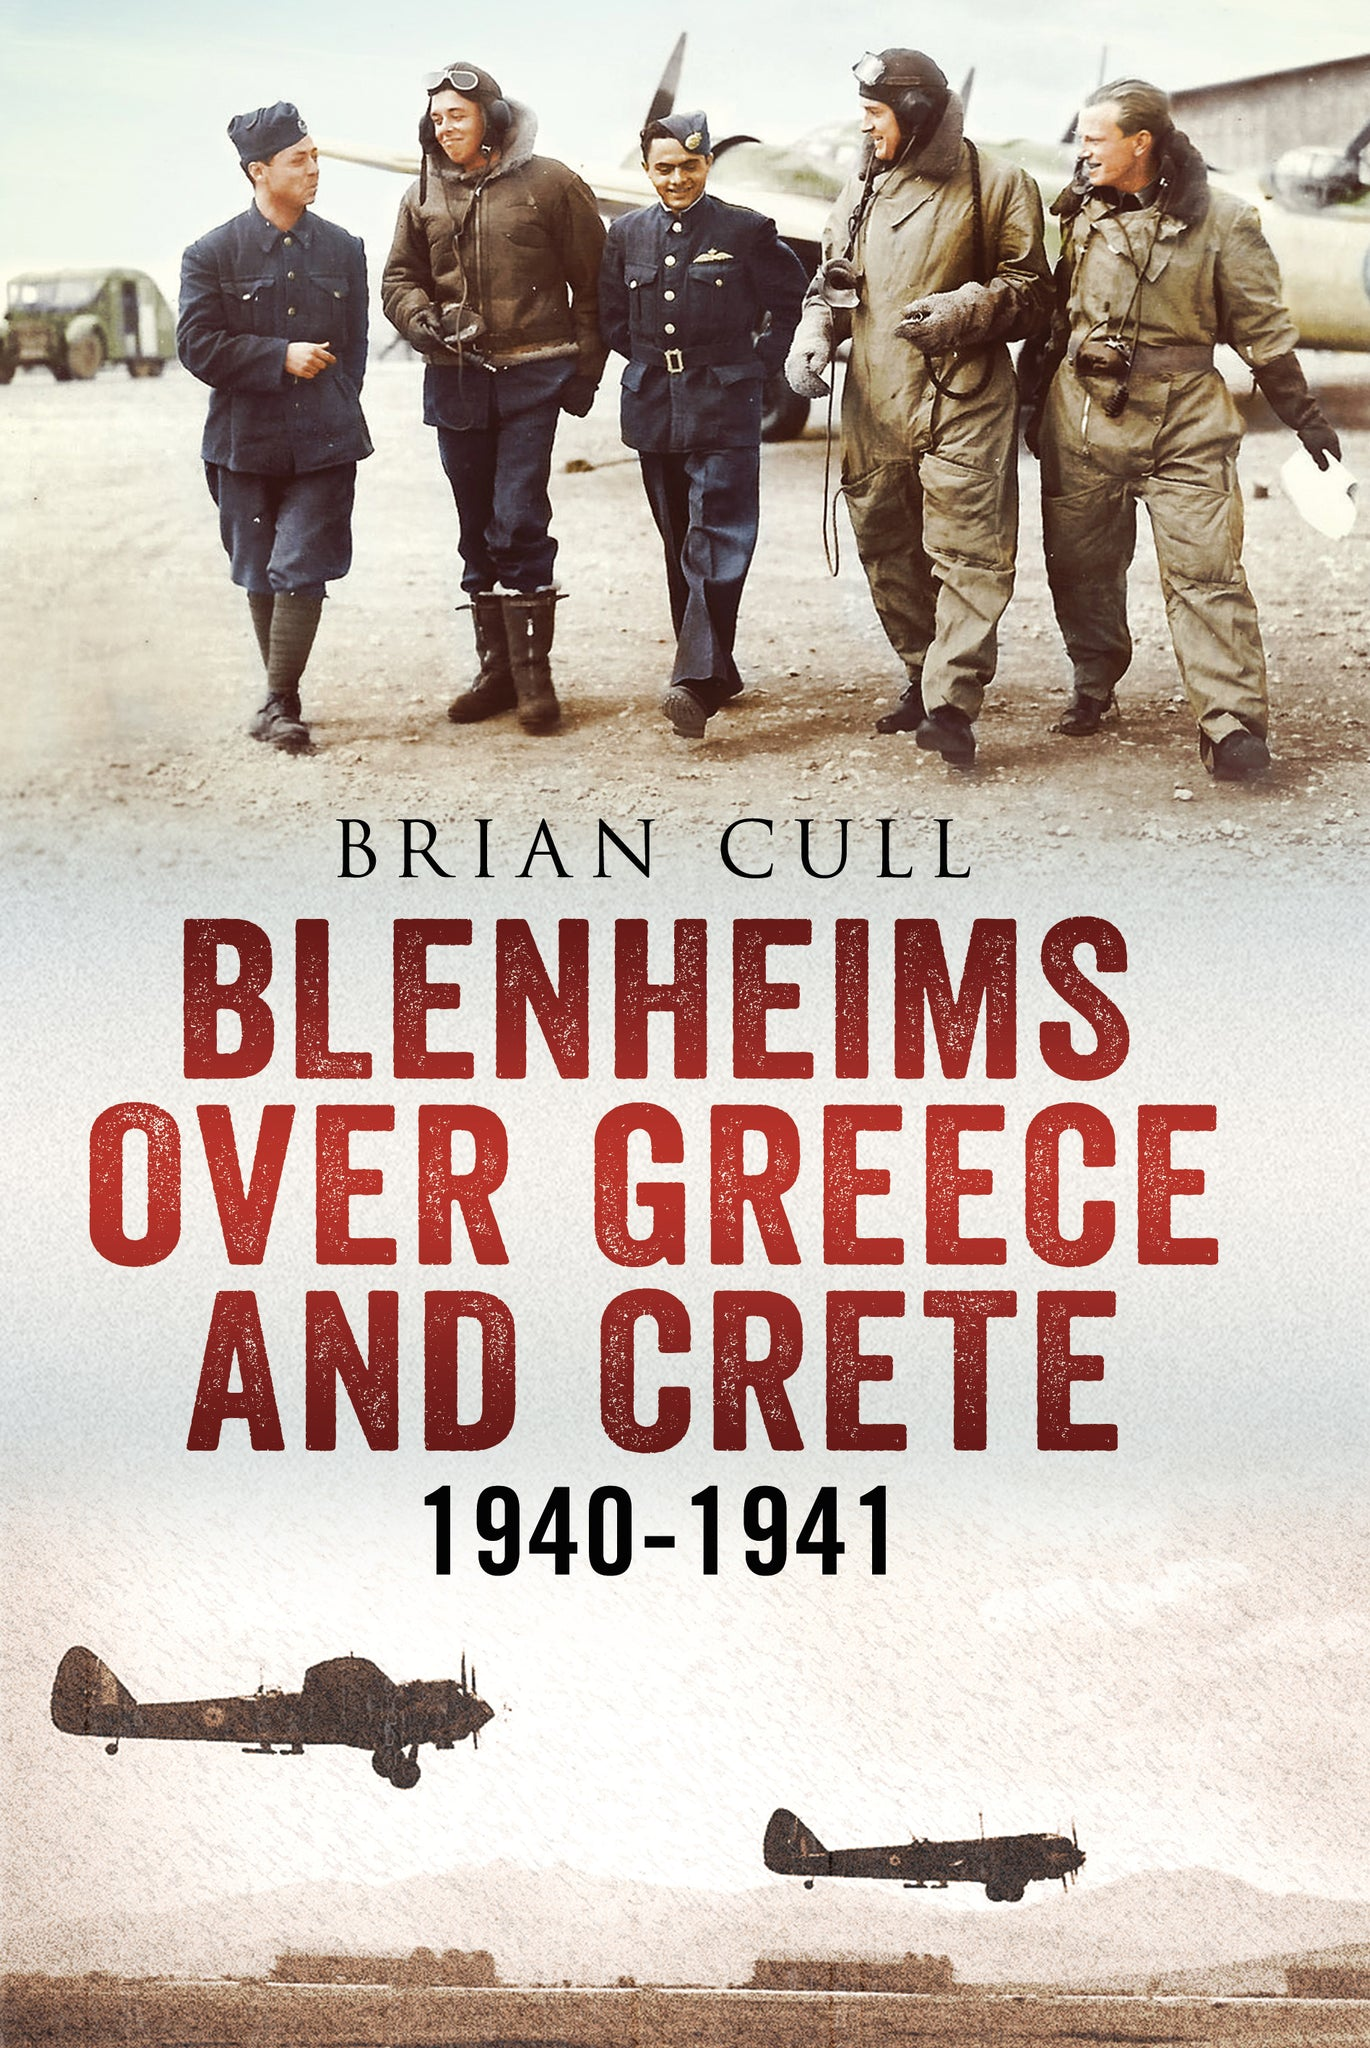 Blenheims Over Greece and Crete 1940-1941 - published by Fonthill Media